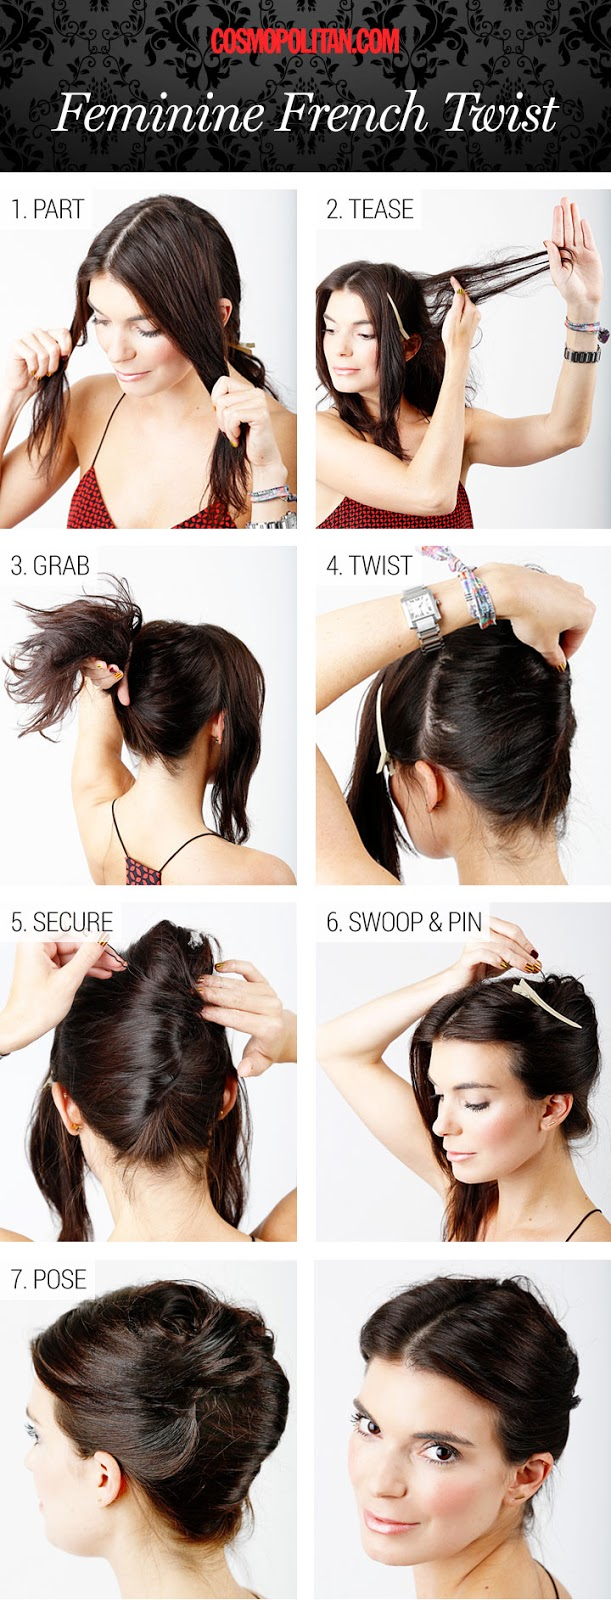 6 Hairstyle Step By Step Make GIrl39Z